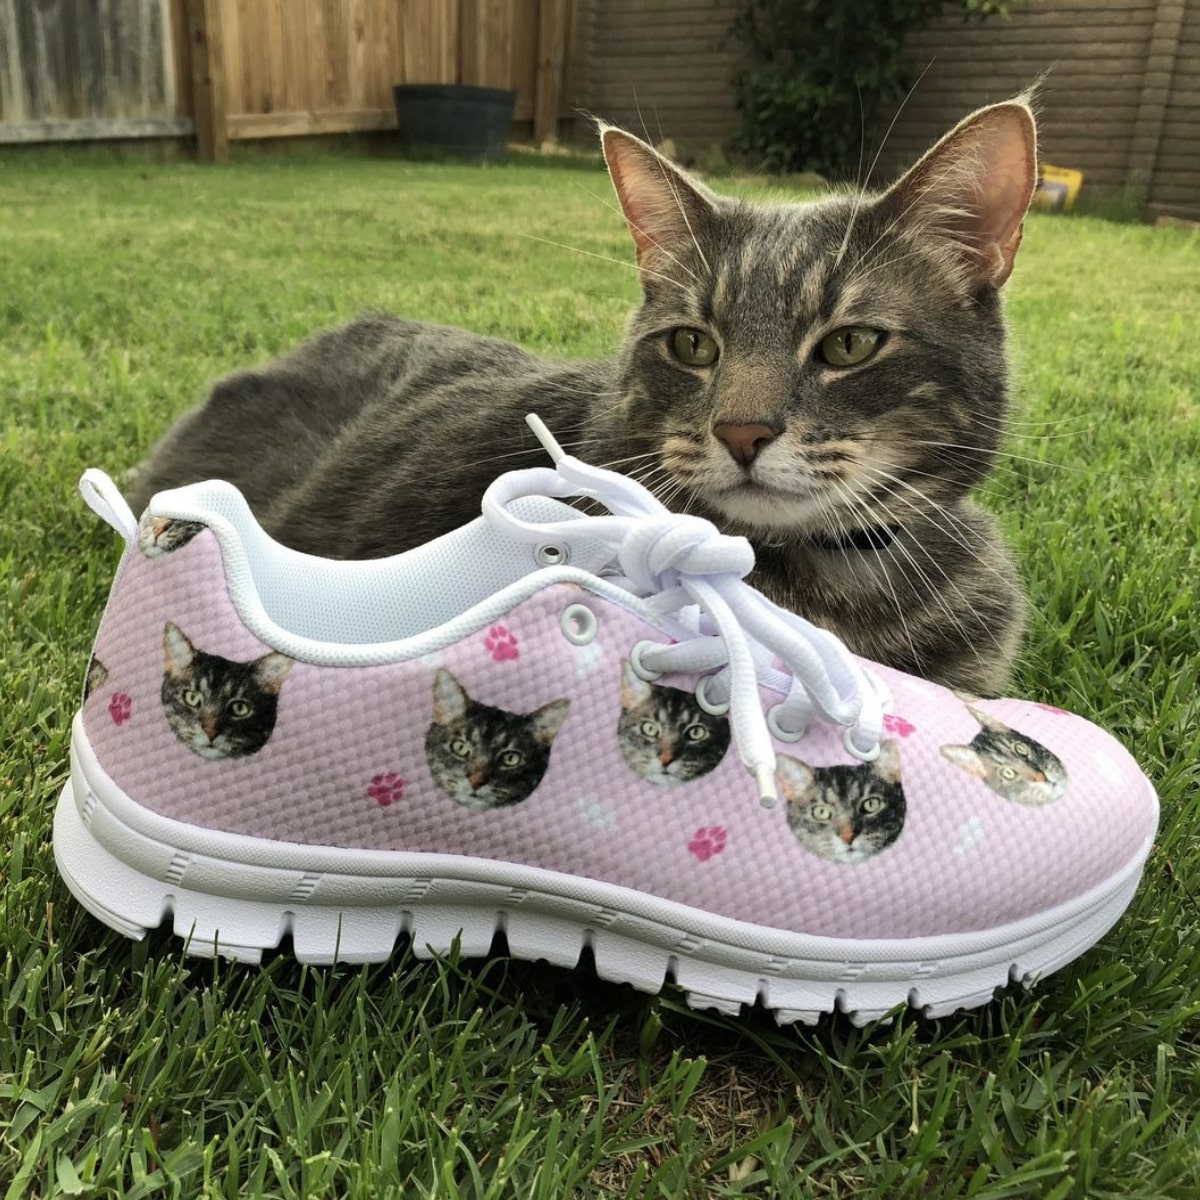 eb9fda5420d34 Personalized Gifts For Cat Lovers - CatsForLife.co